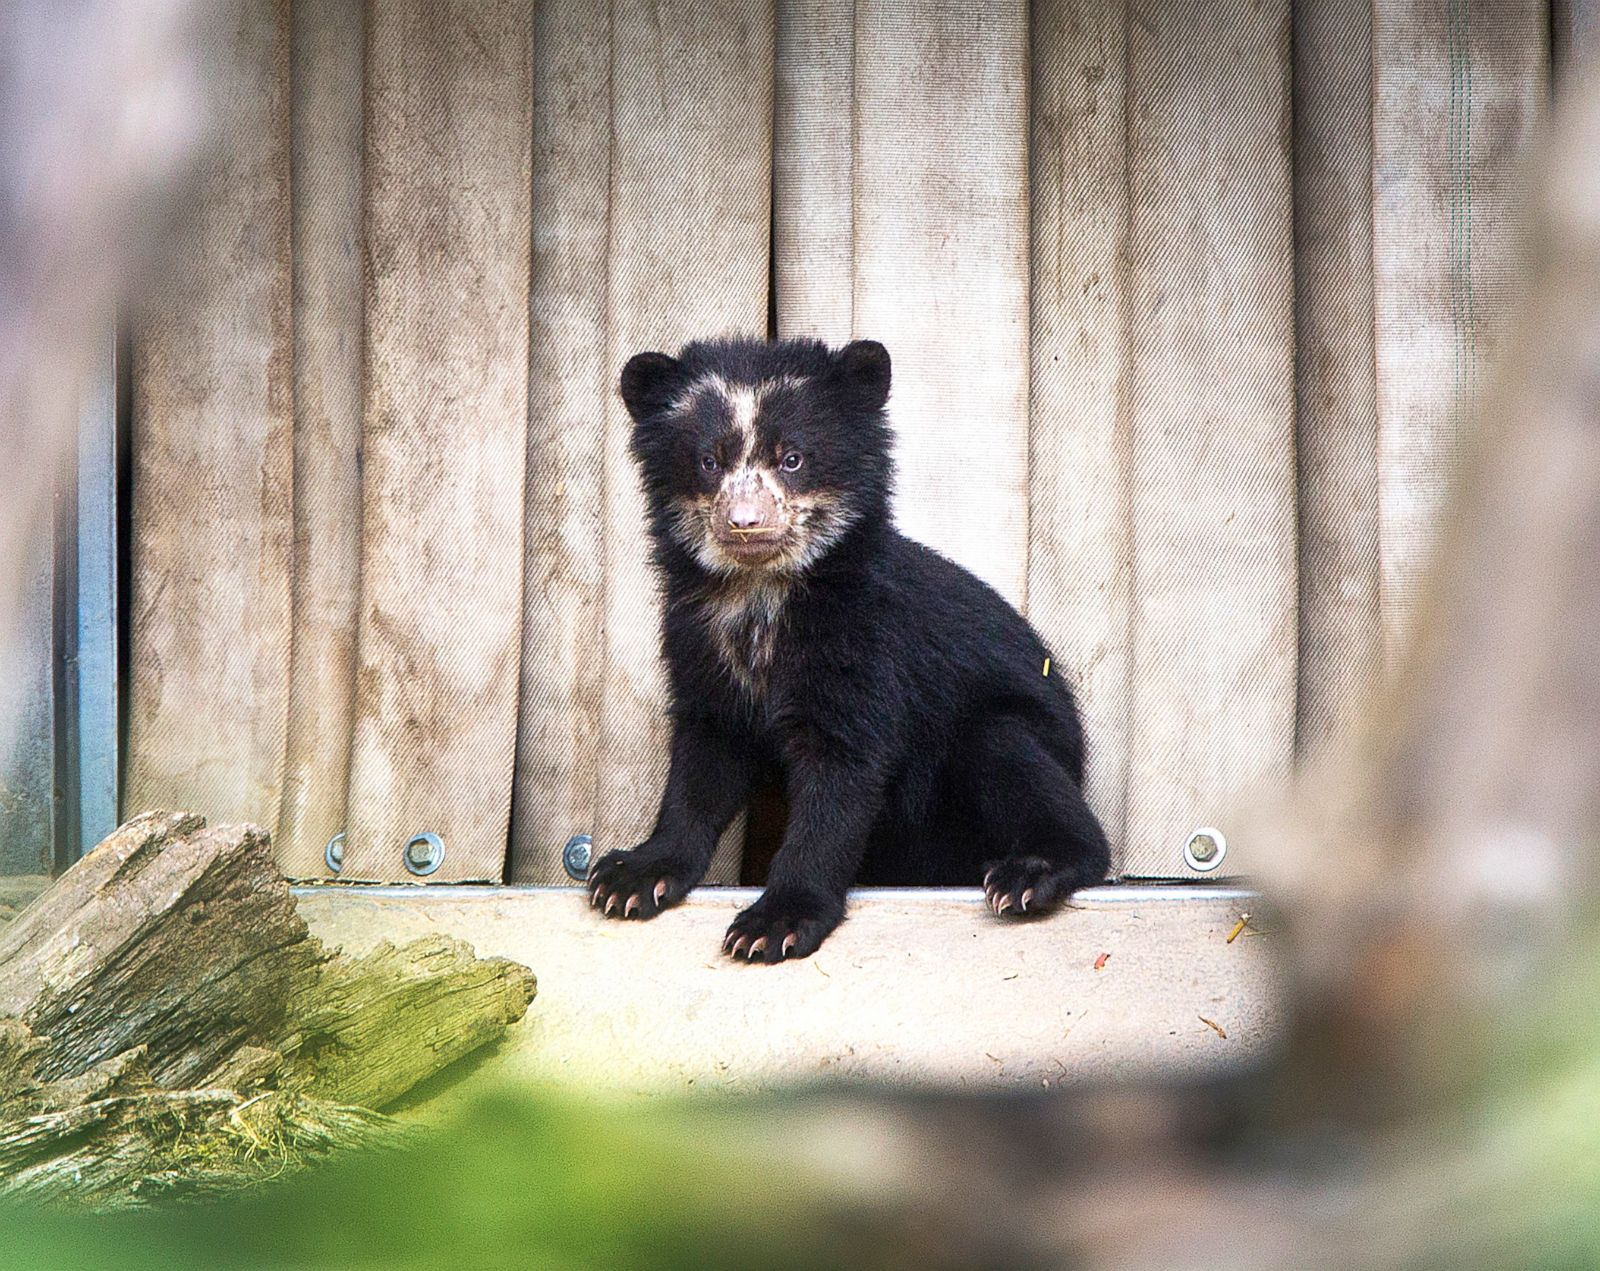 Andean bear baby emerges out of its den Picture | Cutest ...